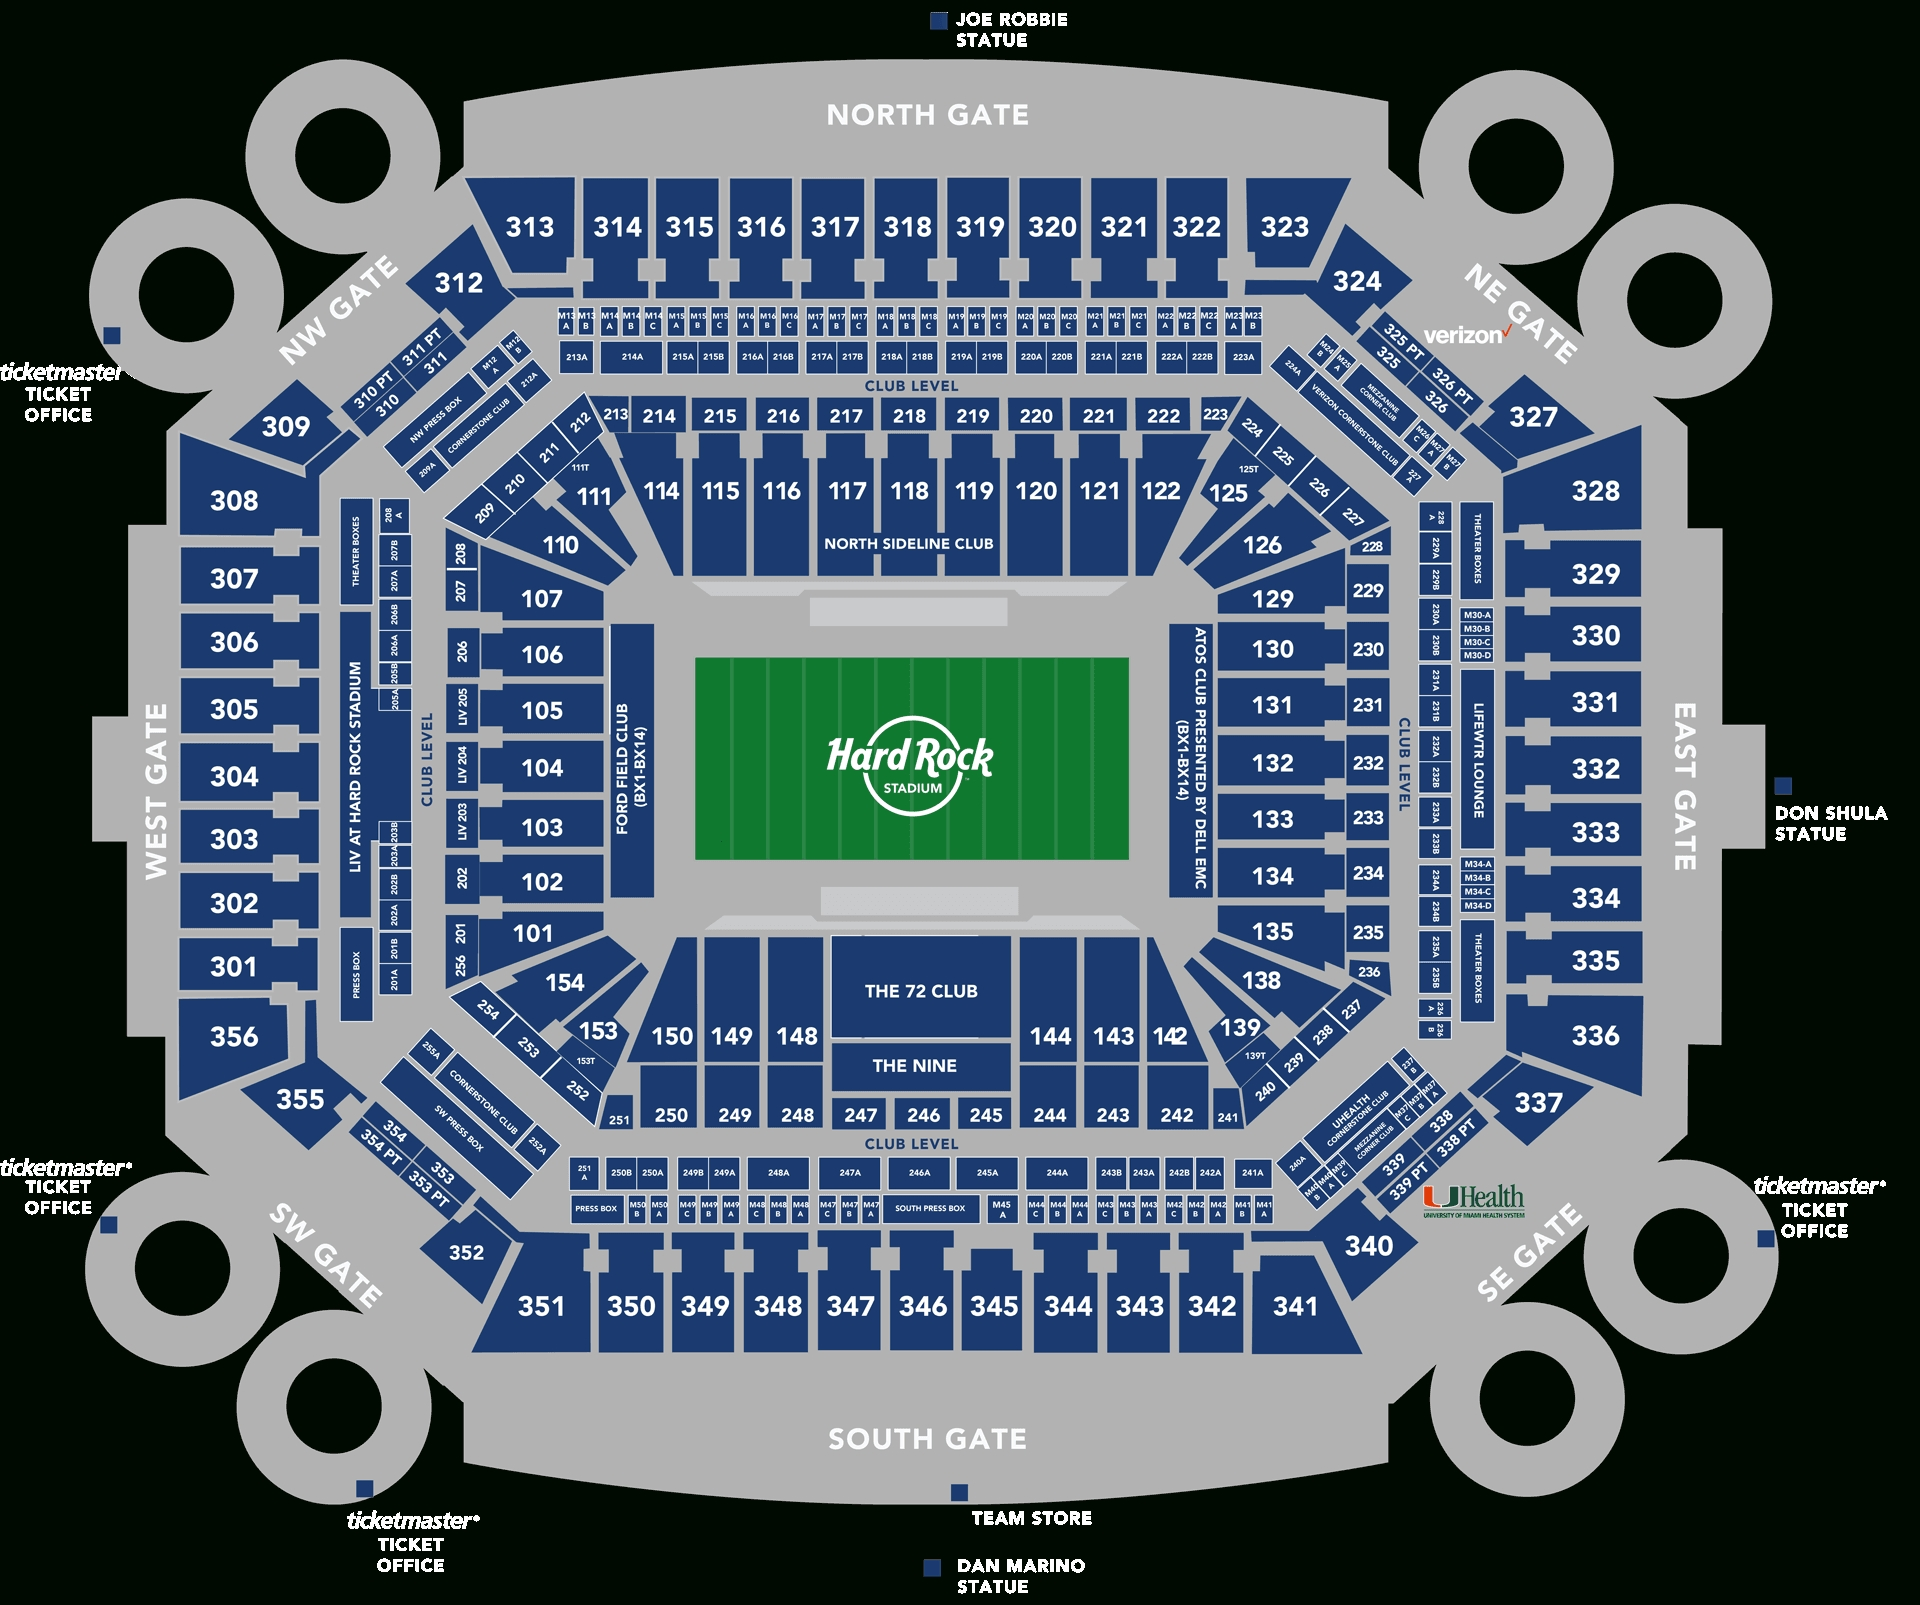 Stadium Seating Chart - Hard Rock Stadium intended for Seating Chart For Super Bowl